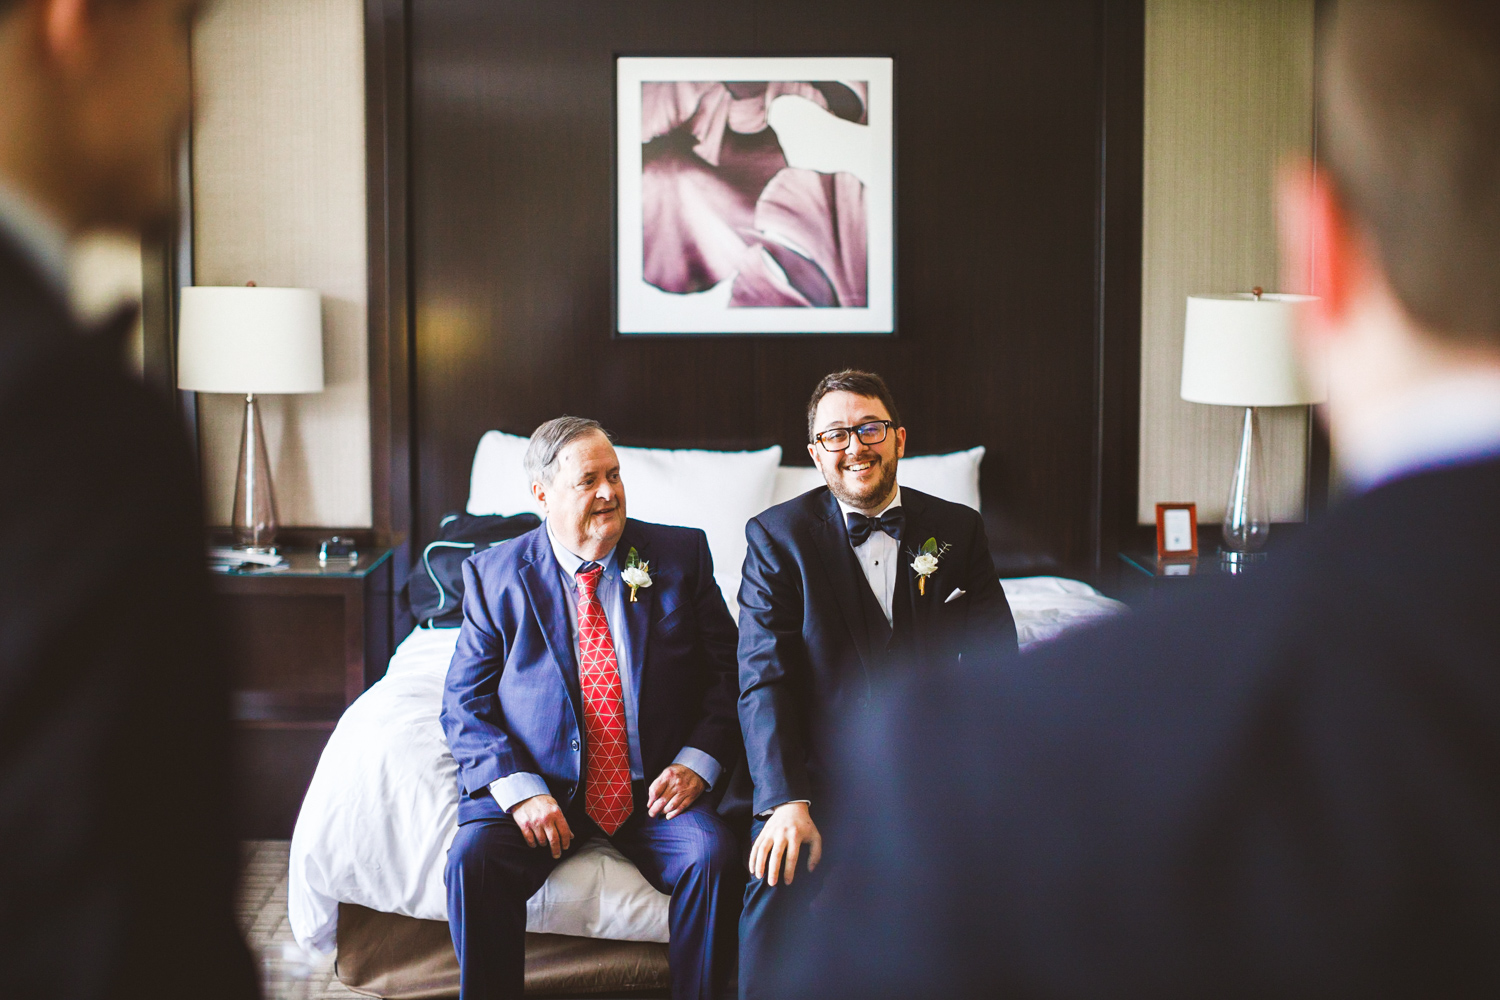 003 - groom and his father before the wedding.jpg